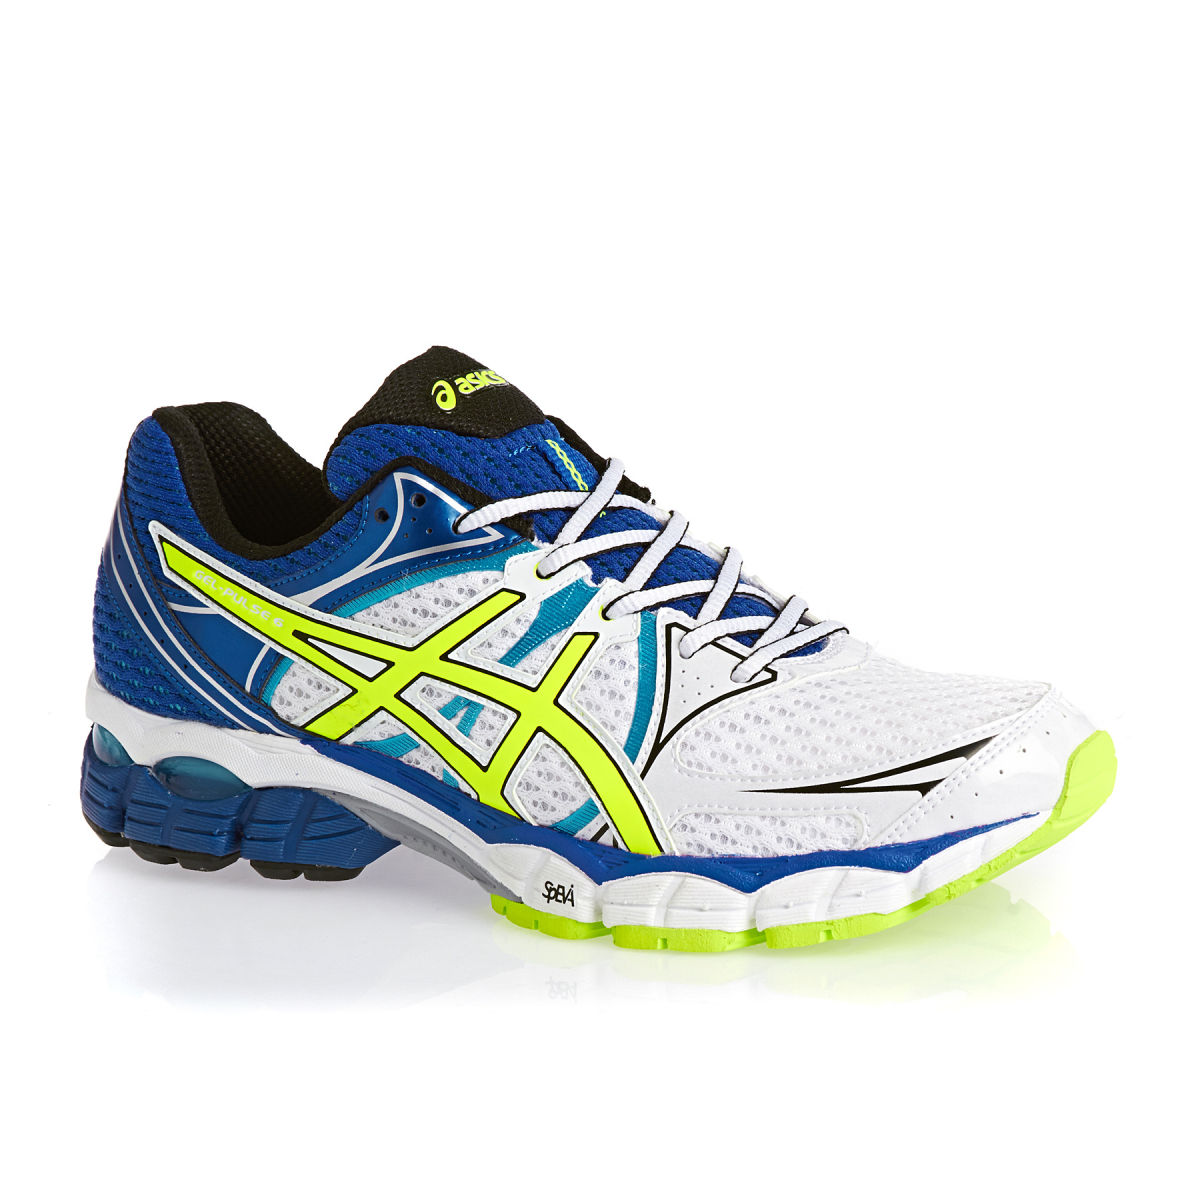 ASICS GEL-Pulse 6 – sjajna entry level patika iz Asicsa!